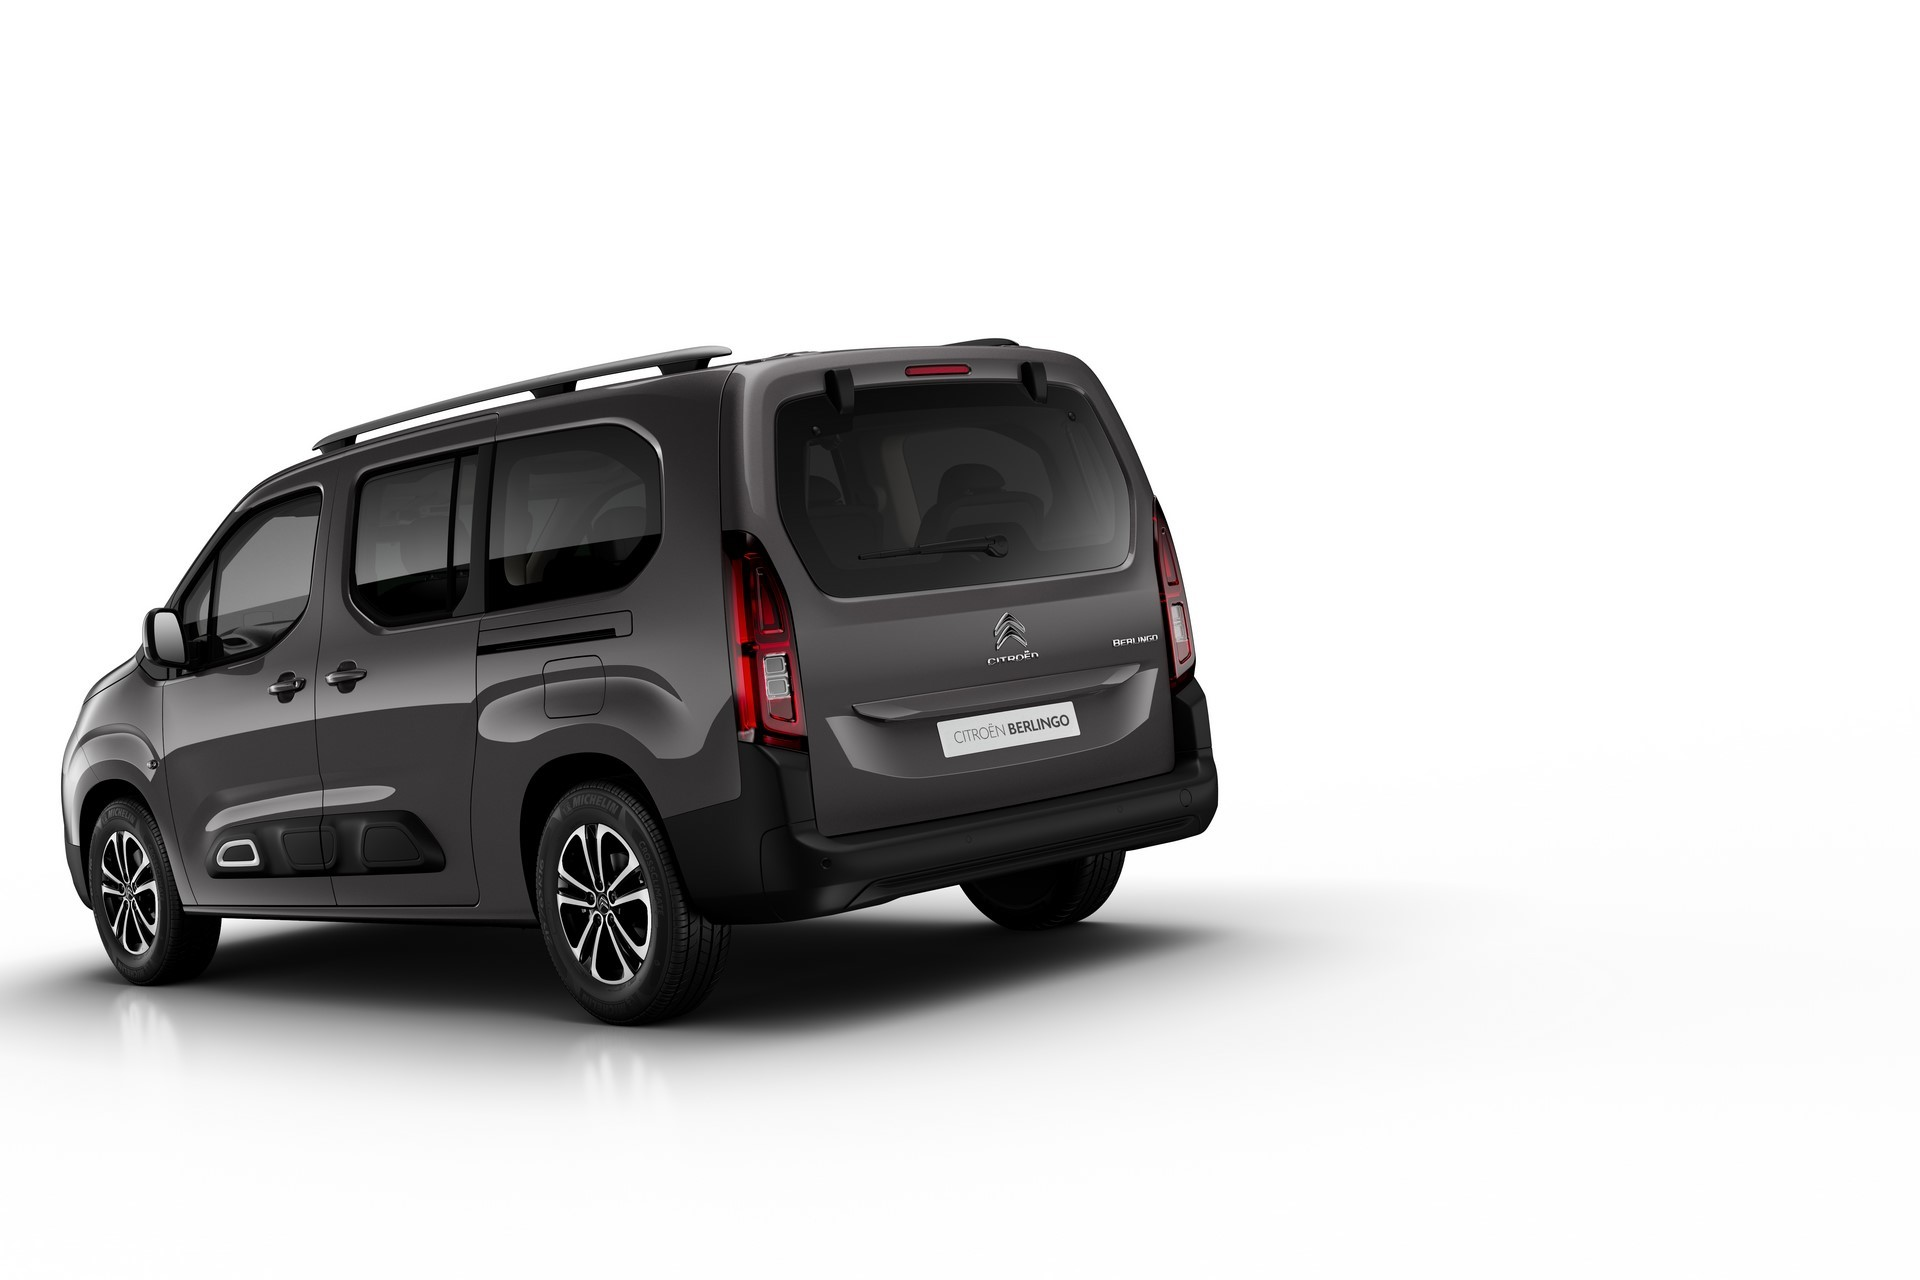 Citroen Berlingo 2018 (61)